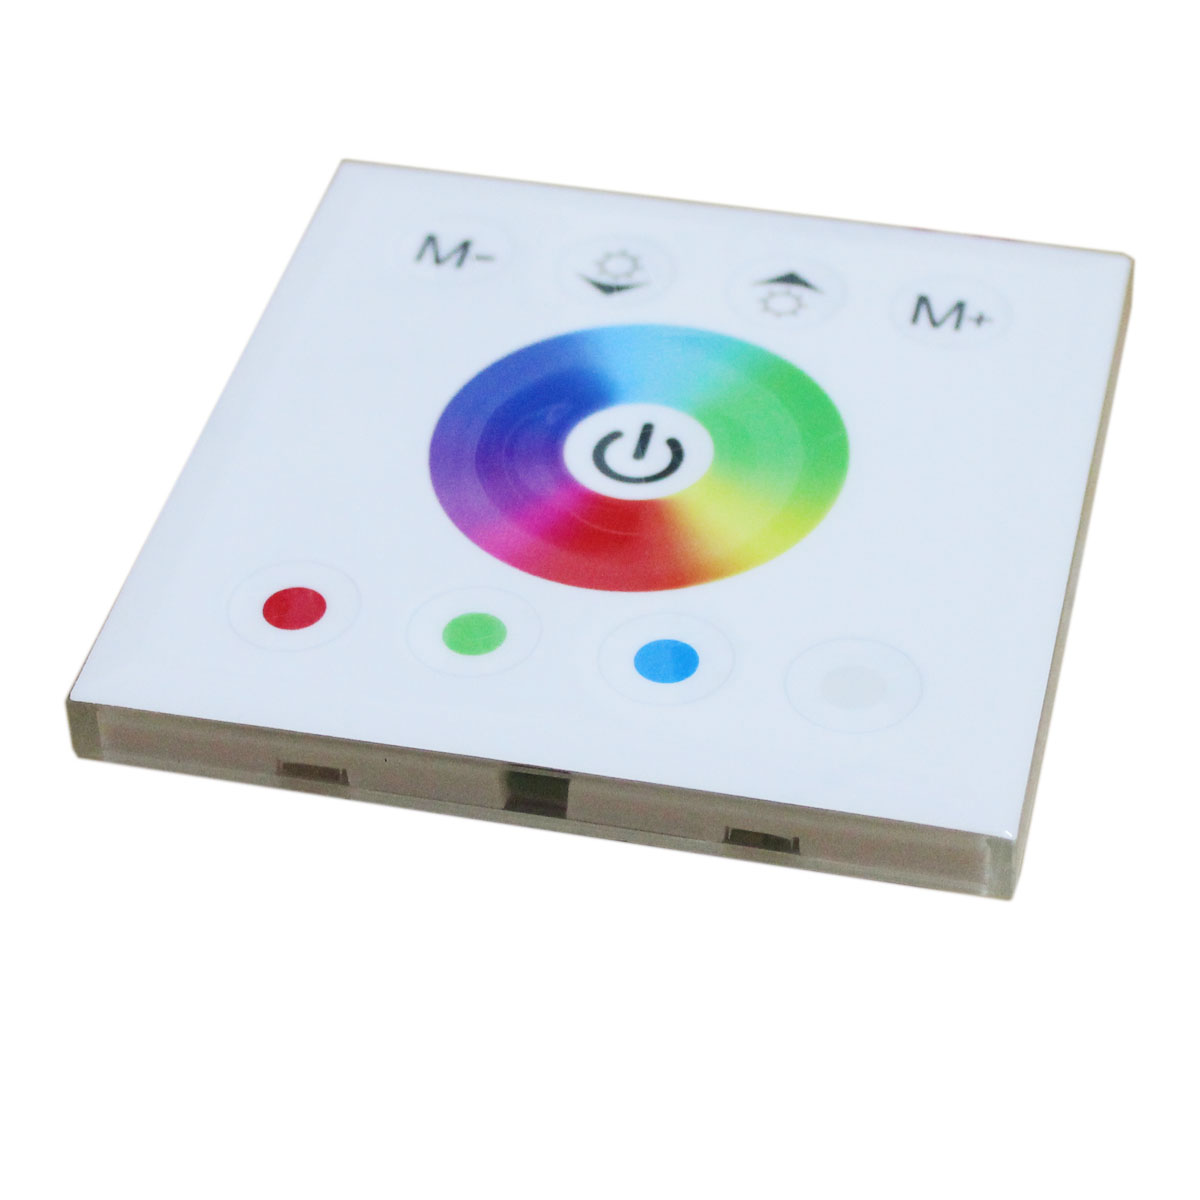 DC12/24V Max 16A 4Ax4CH, Universal Wall Mounted Acrylic LED RGBW Touch Panel Full Color Controller For 5050 RGBW Strips light